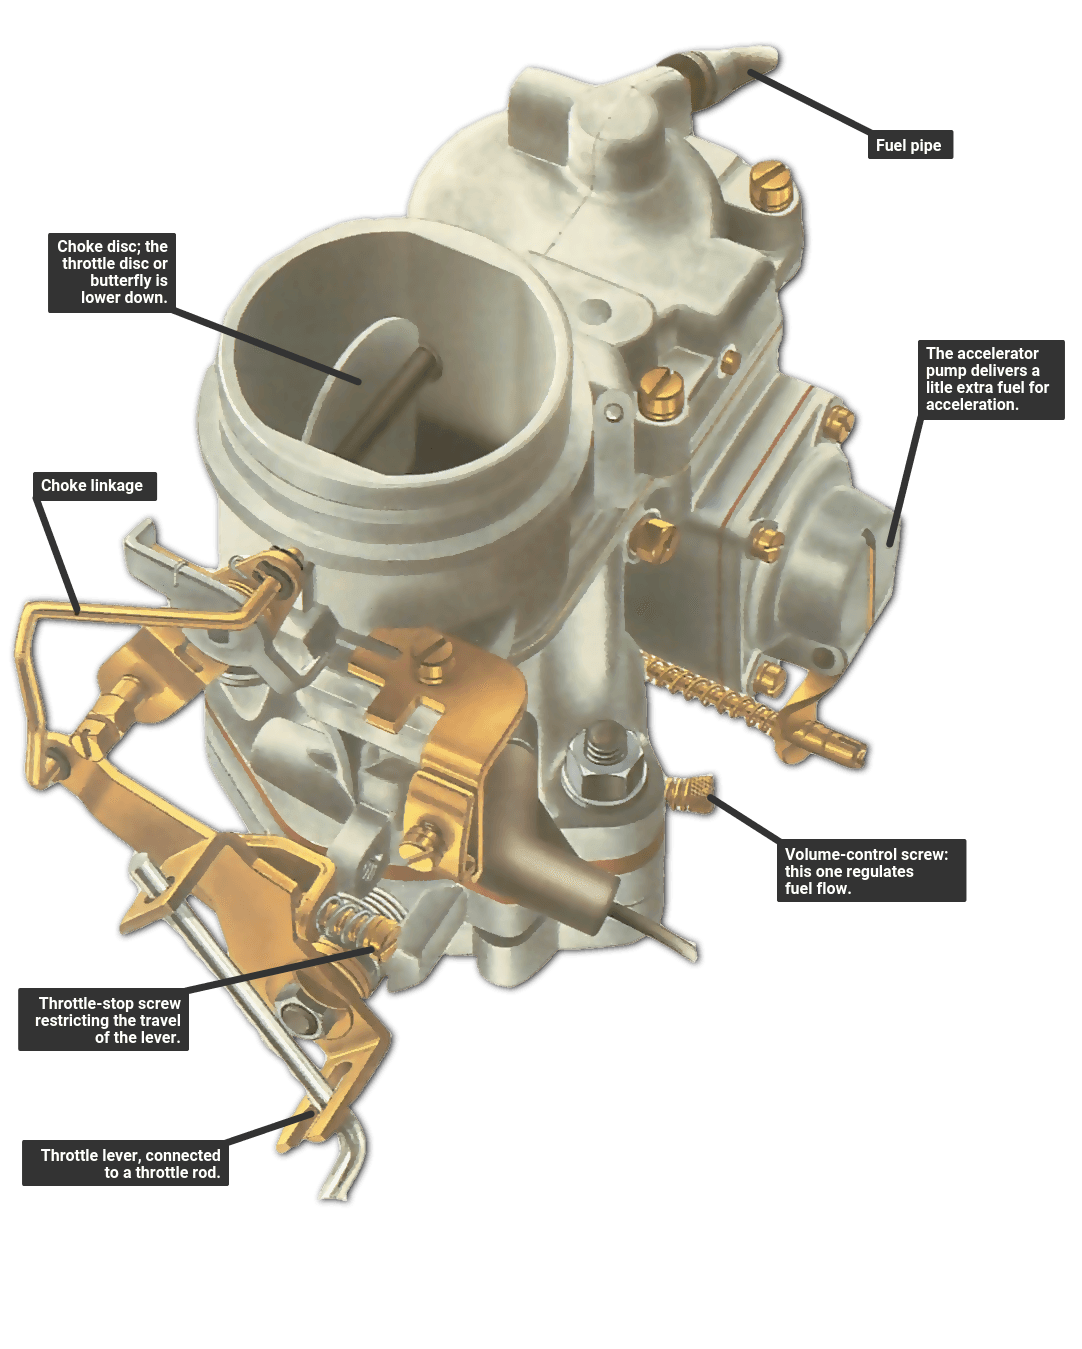 Typical fixed-jet carburettor